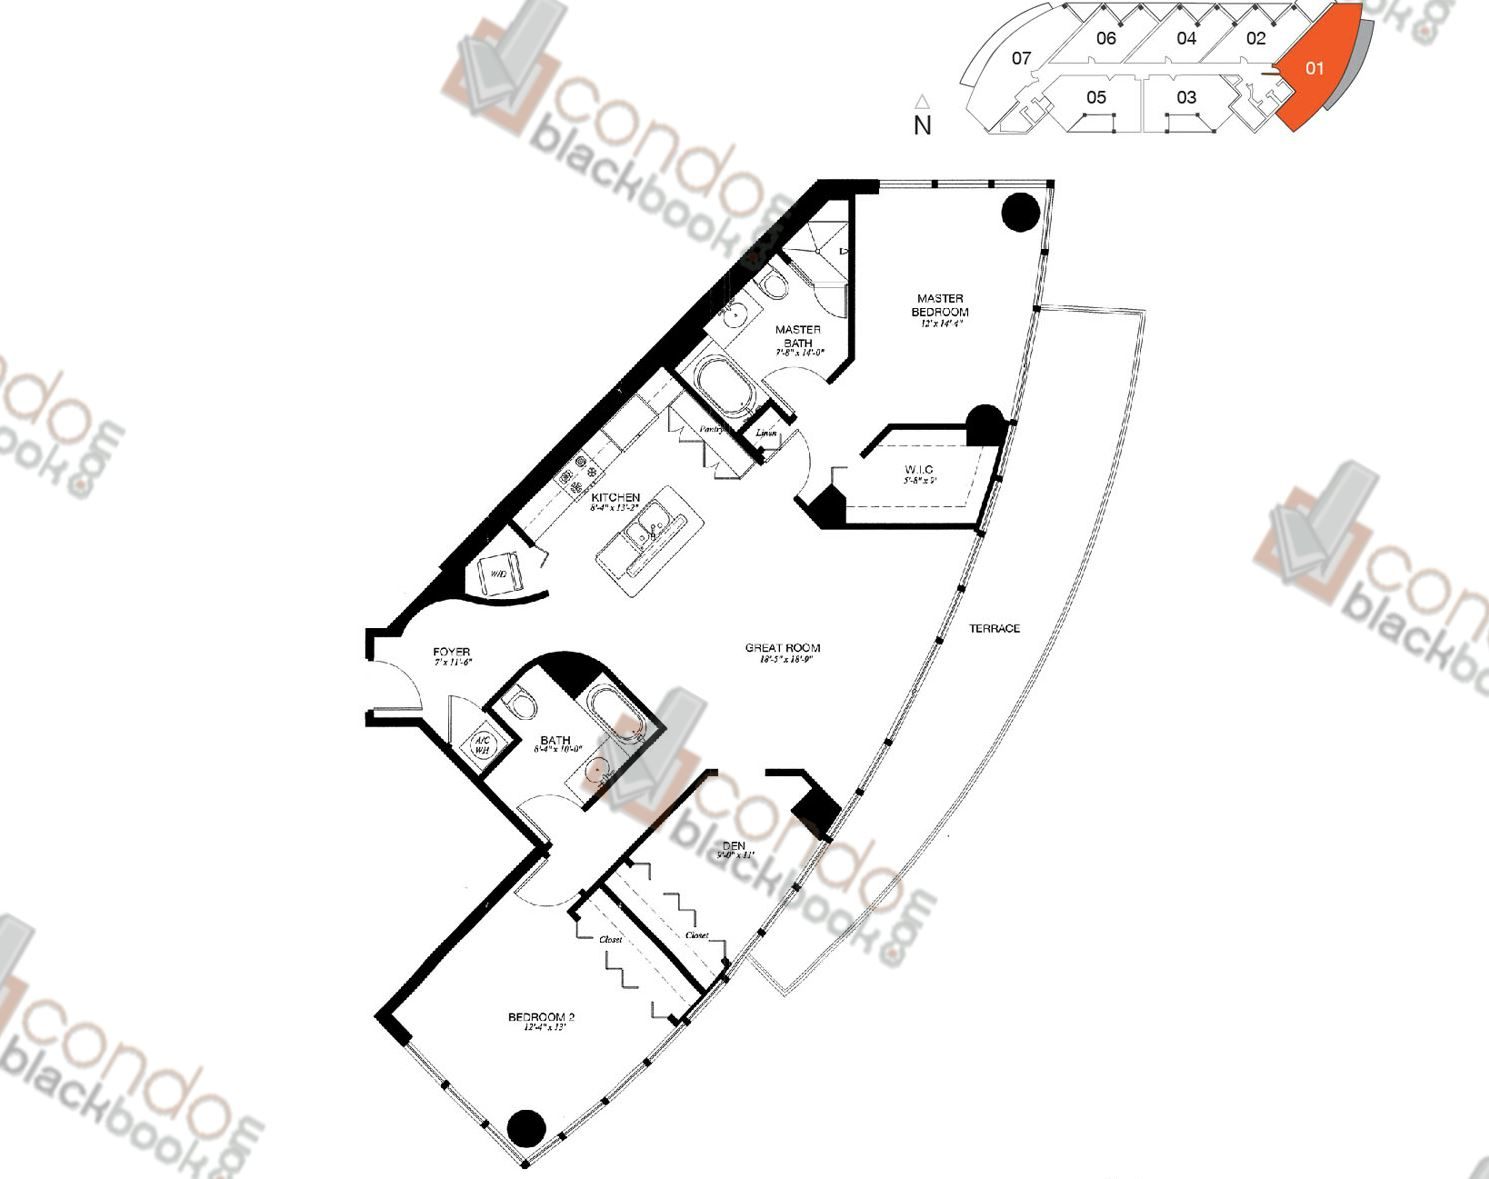 Floor plan for Platinum Edgewater Miami, model 01, line 01, 2/2+Den bedrooms, 1,363 sq ft